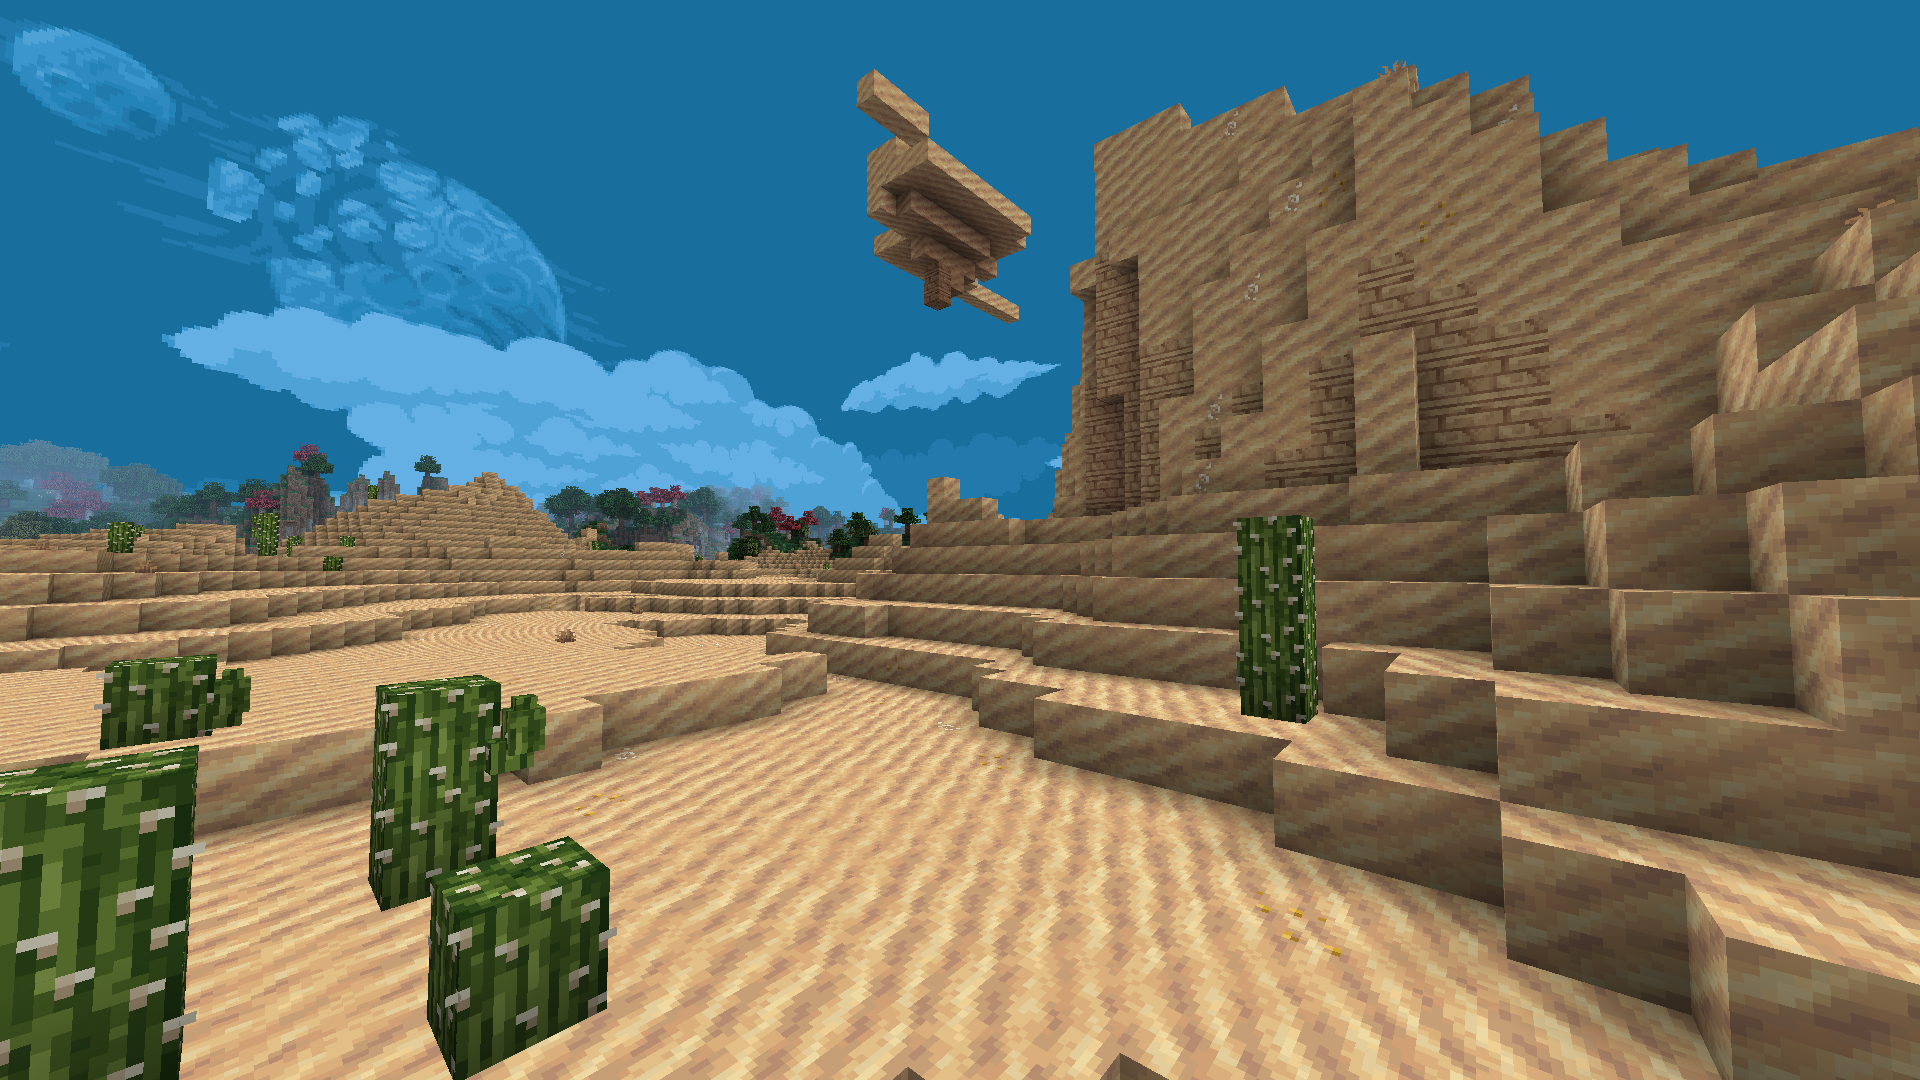 how to use texture packs in minecraft on windows 10